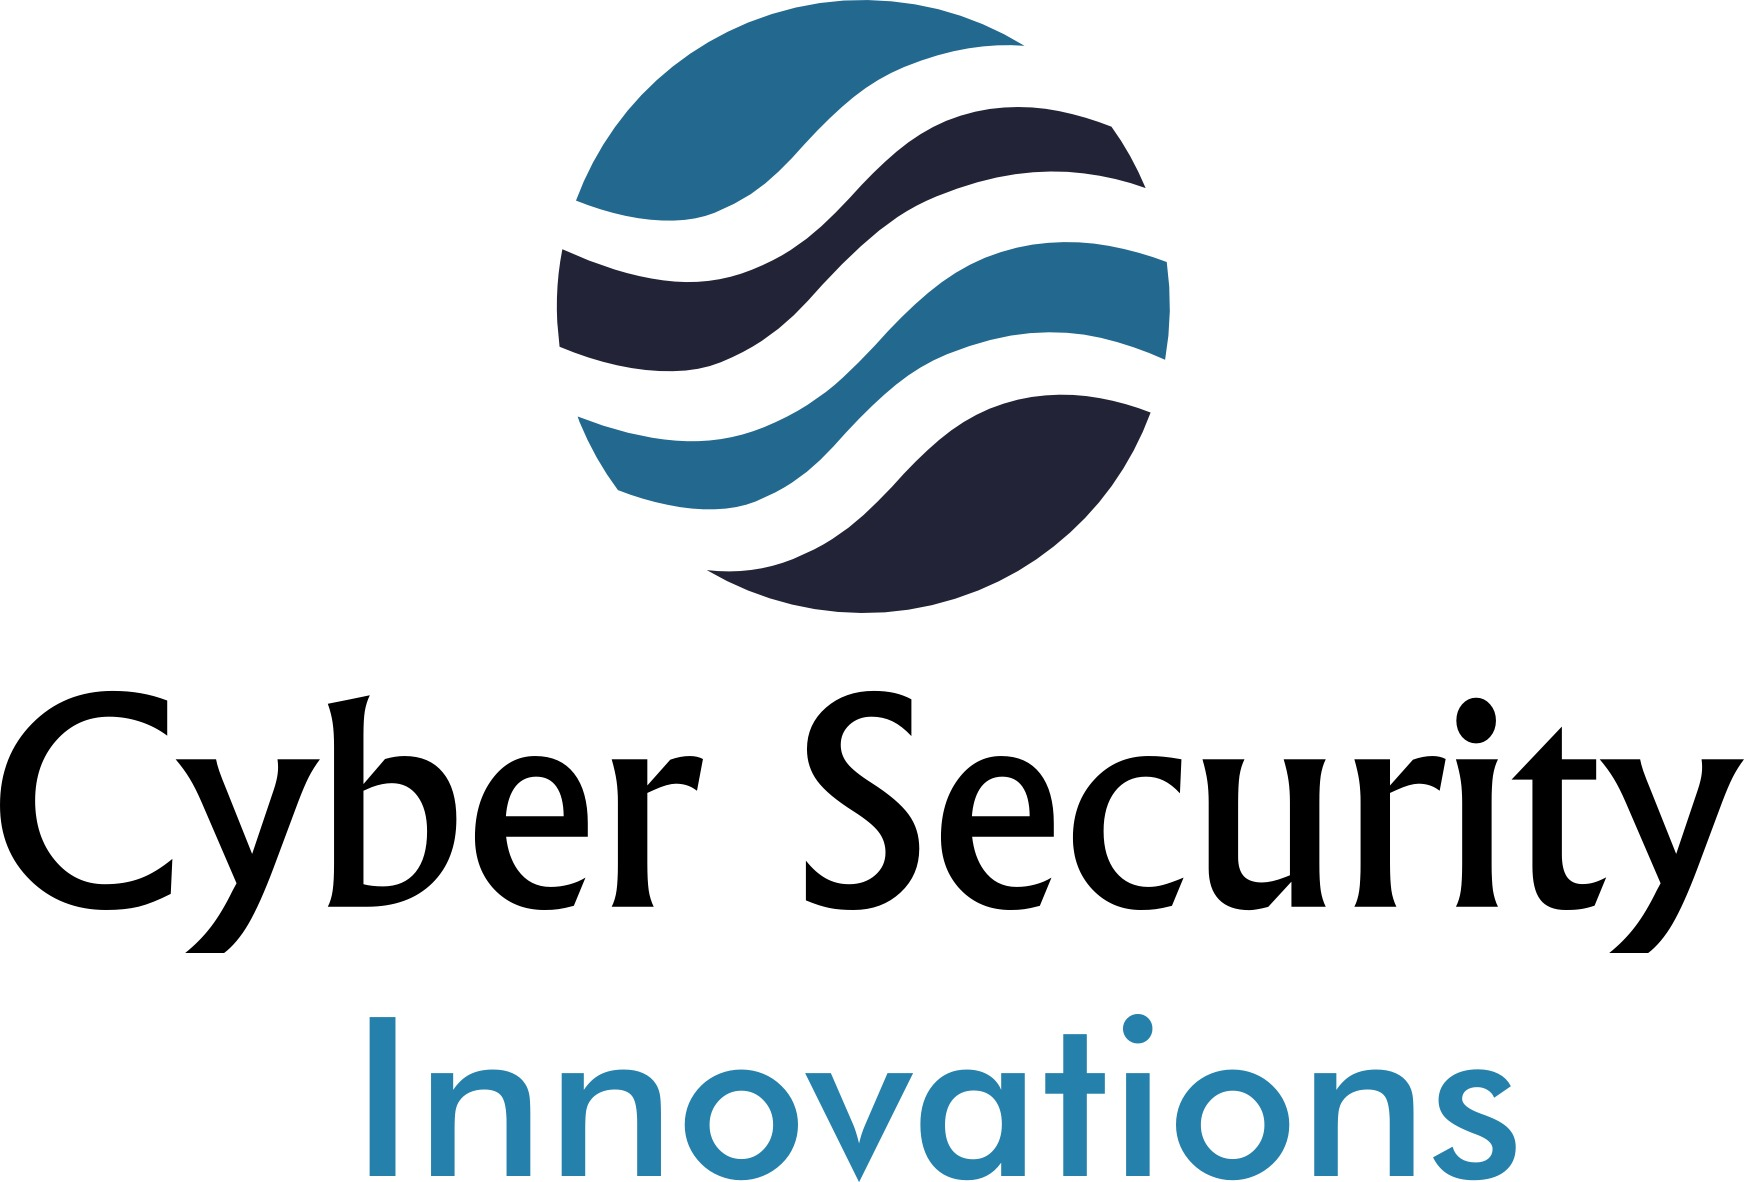 Cyber Security Innovations